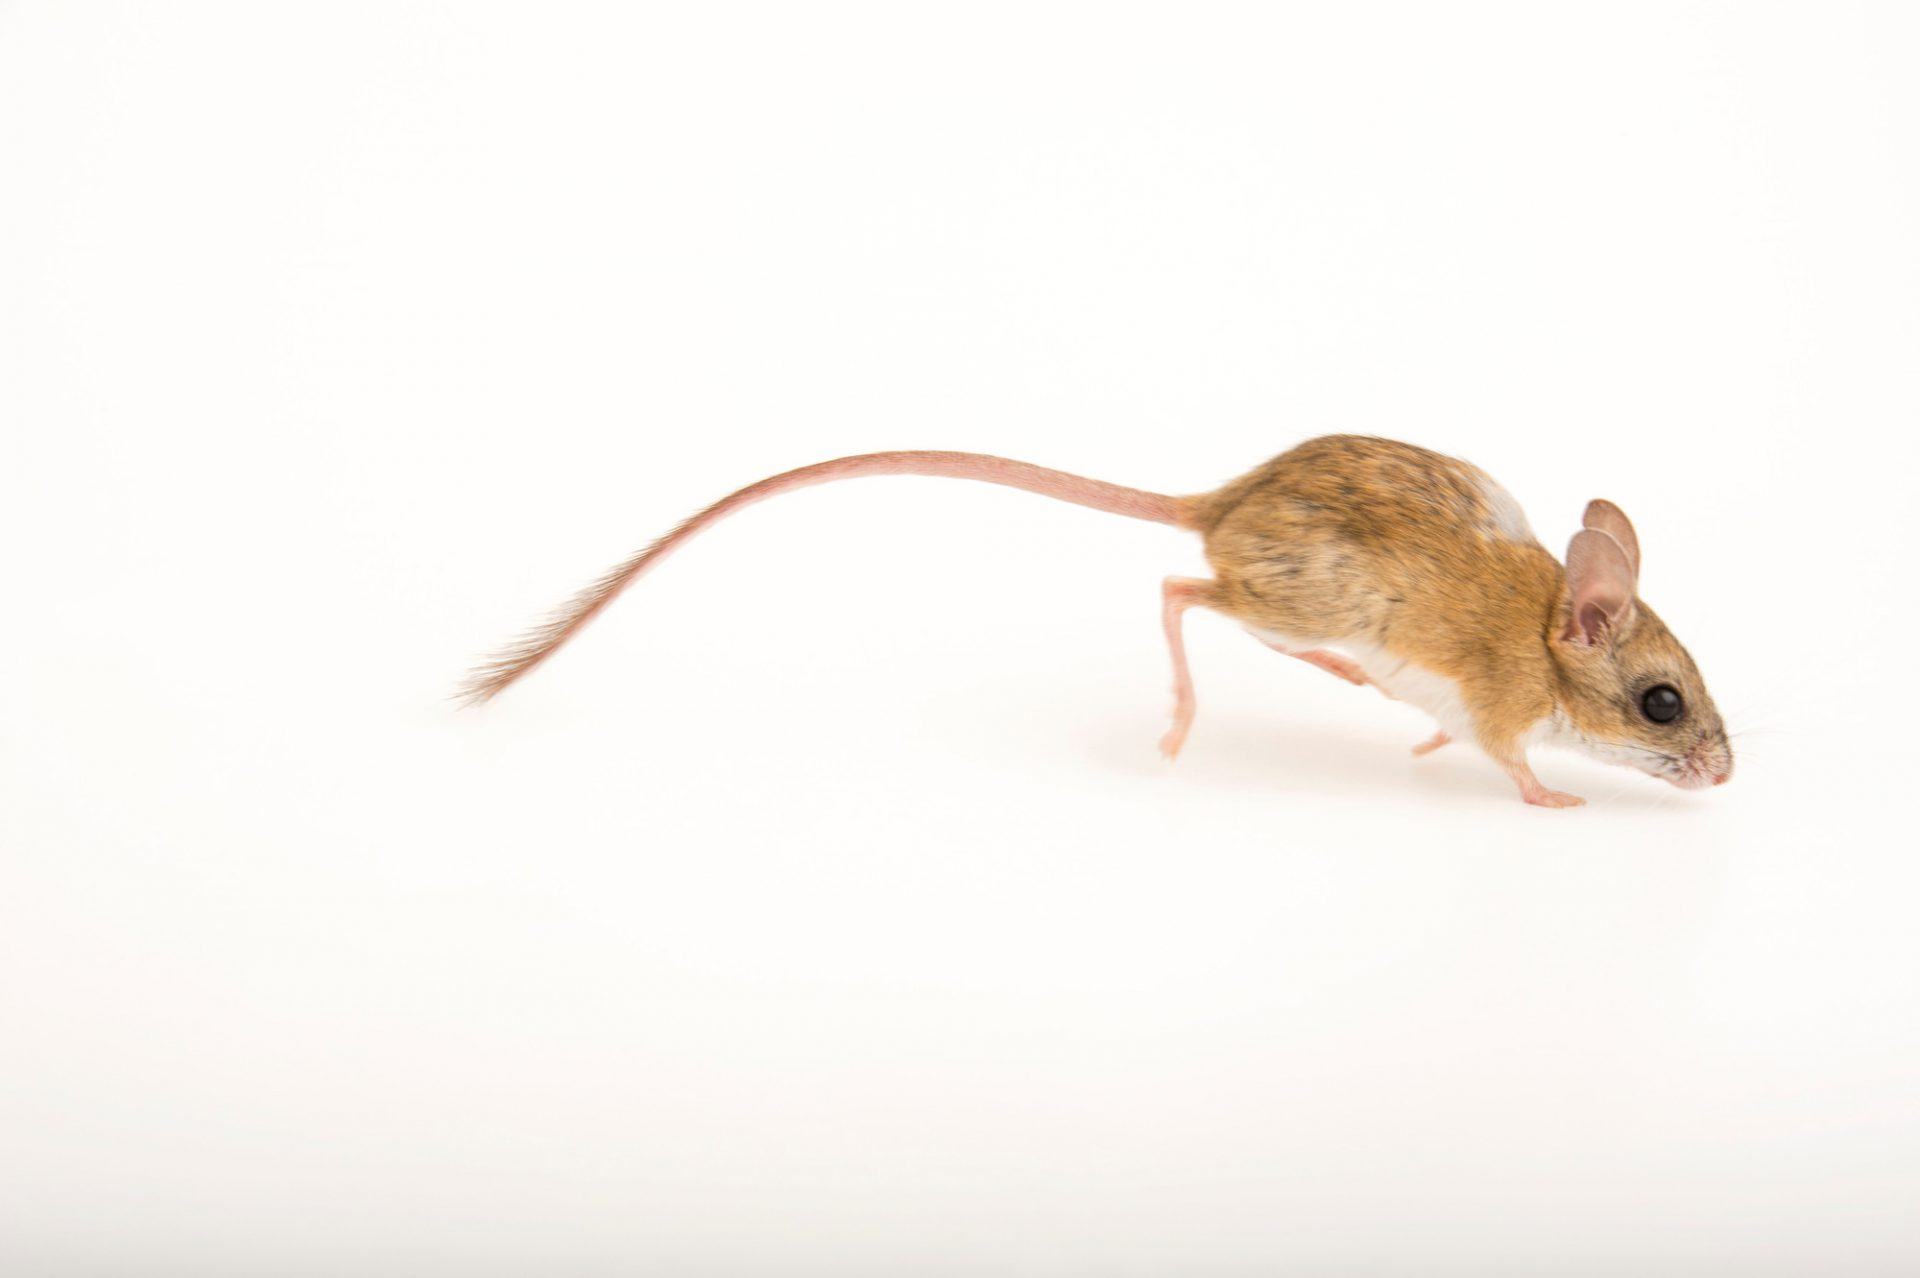 Picture of a spinifex hopping mouse (Notomys alexis) at the Wild Life Sydney Zoo.